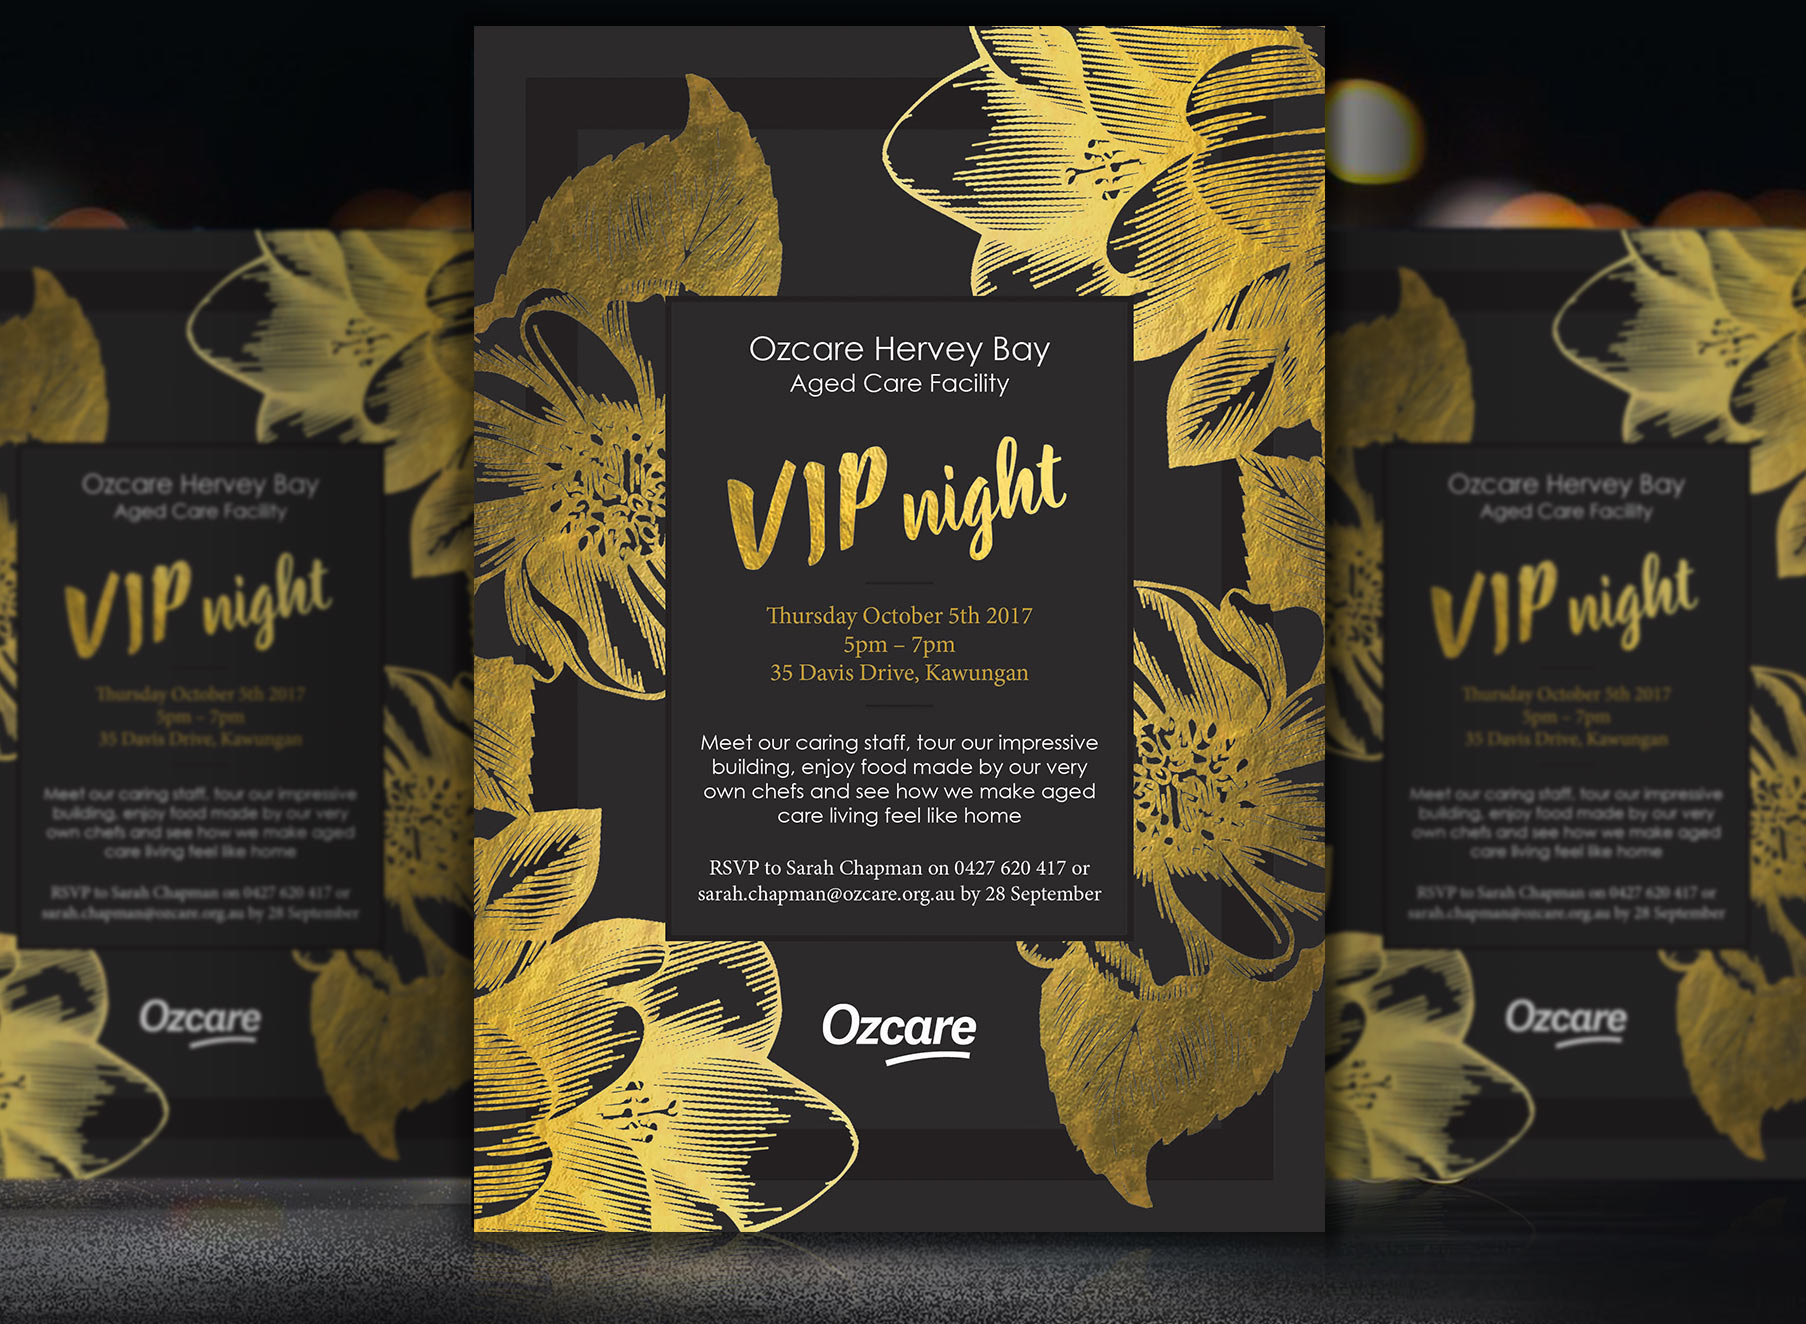 Ozcare Hervey Bay VIP Night Invite - Folio